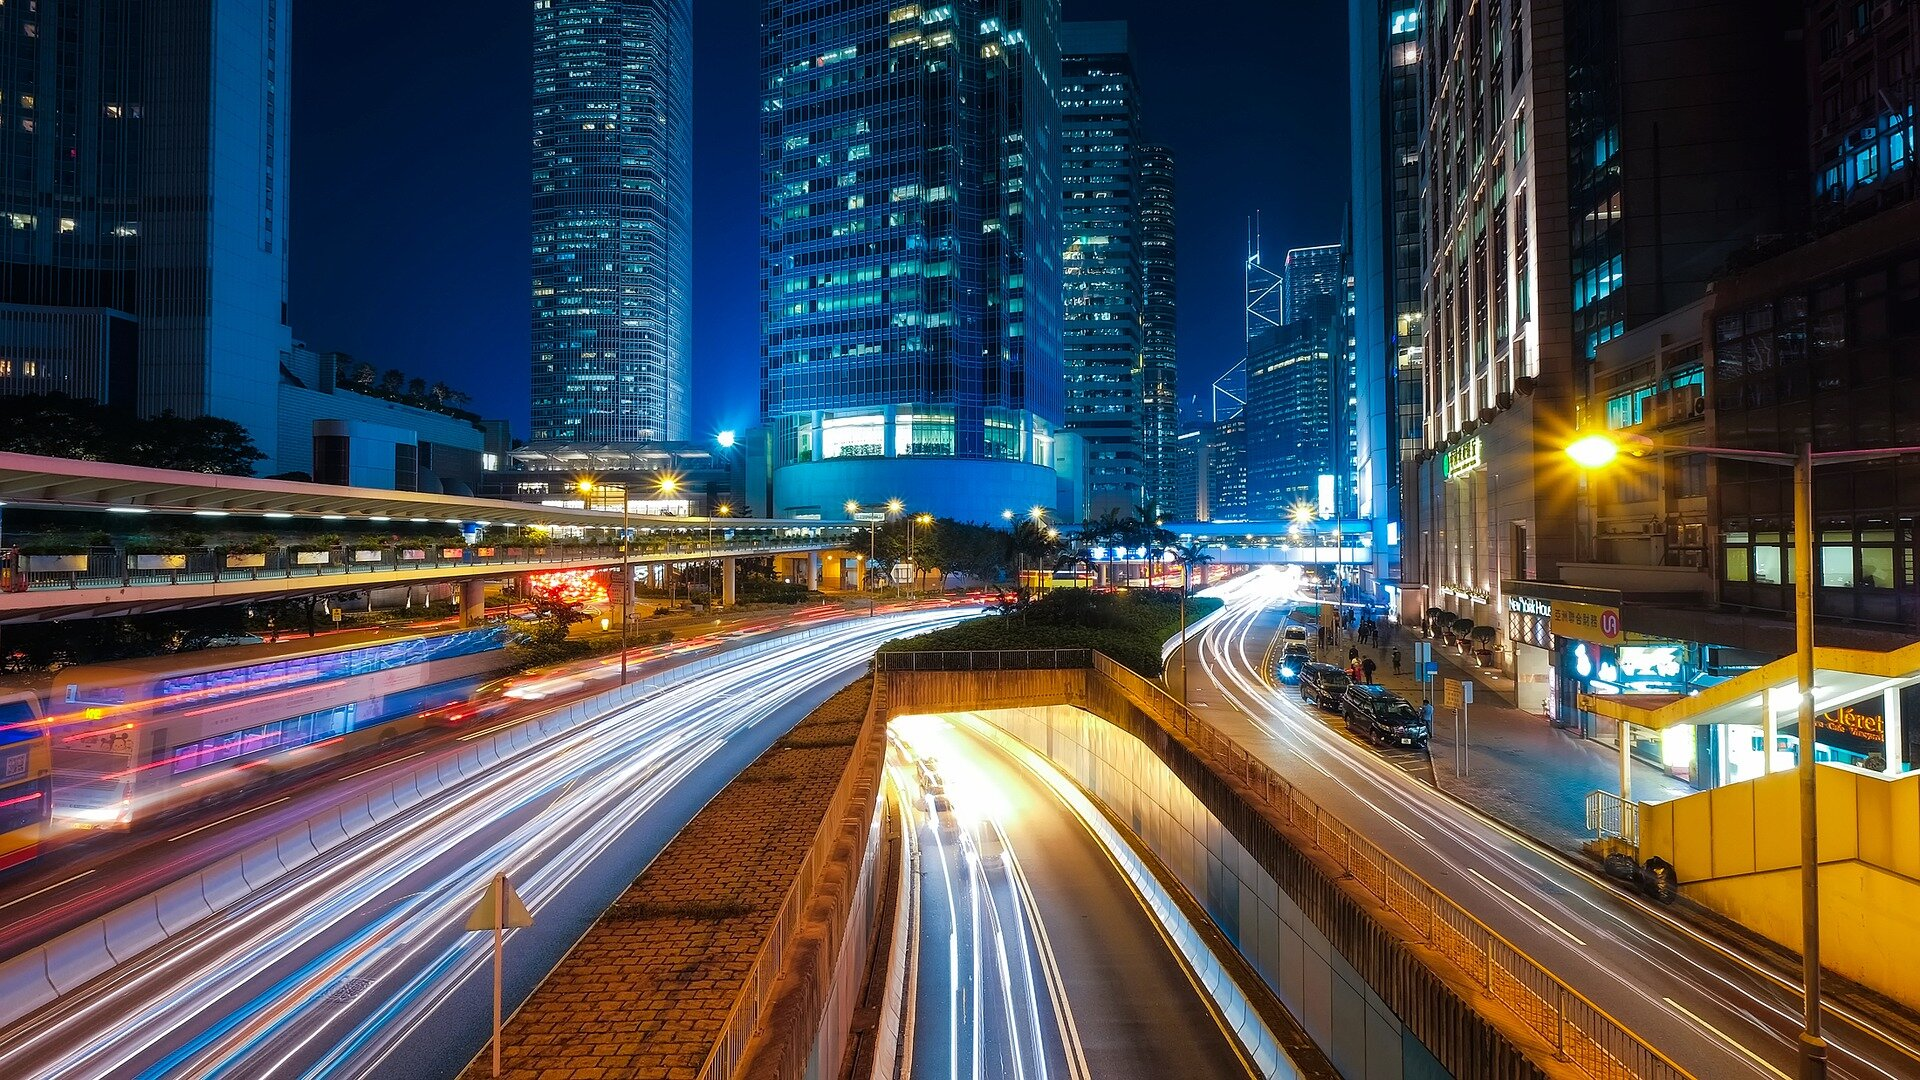 The effectiveness of real-time monitoring of drivers by insurance companies